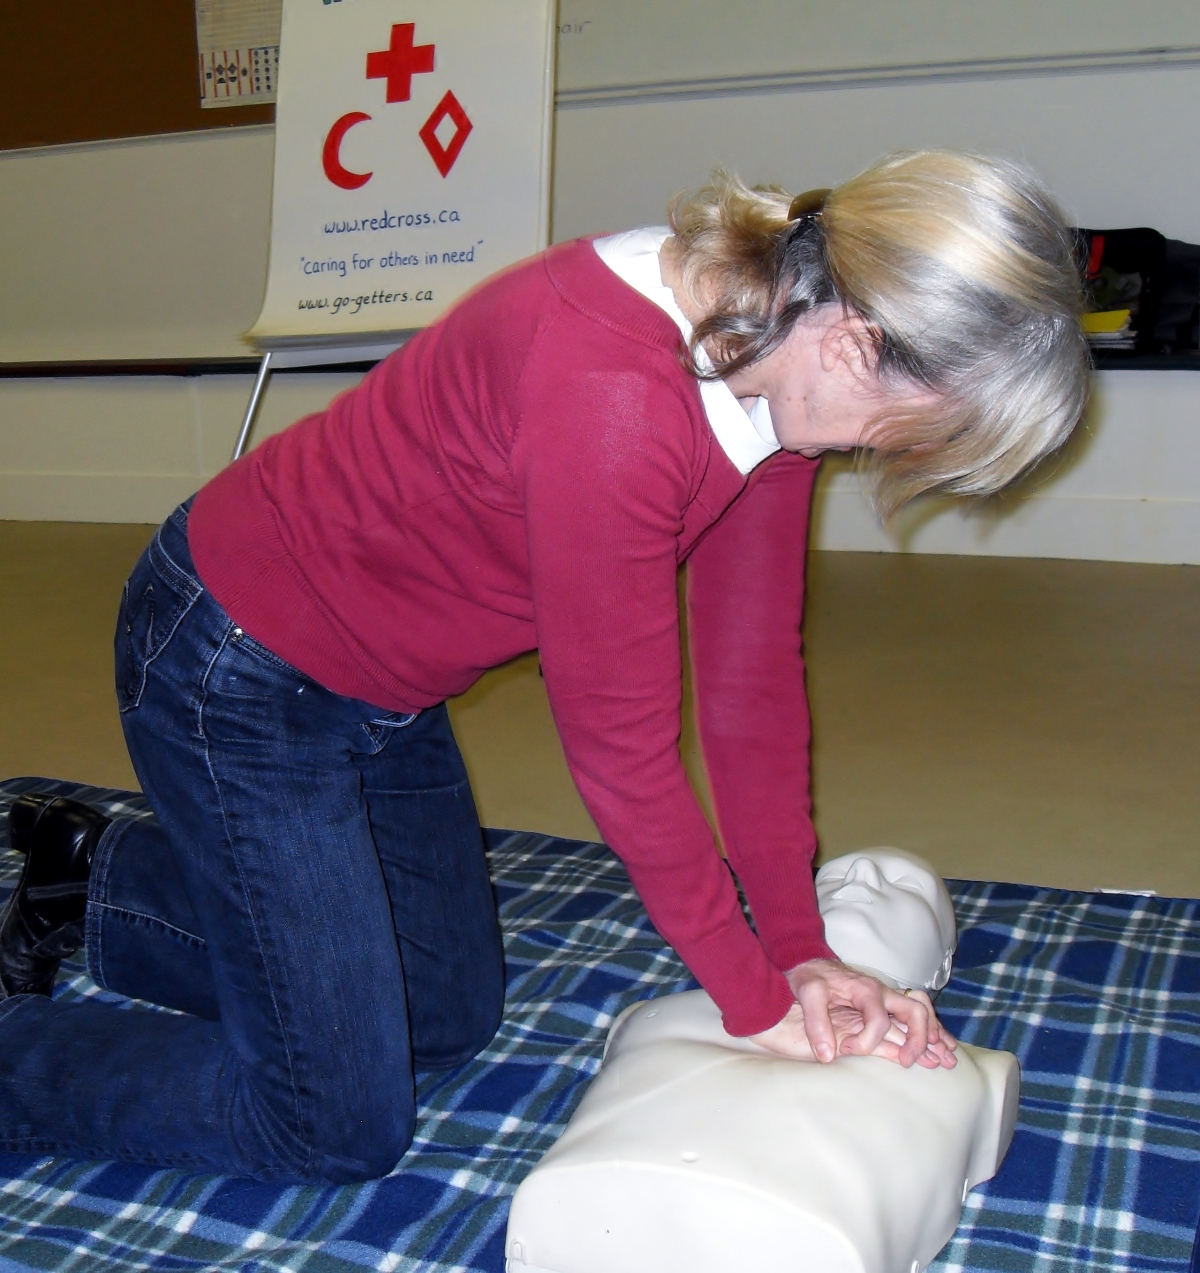 woman practicing CPR